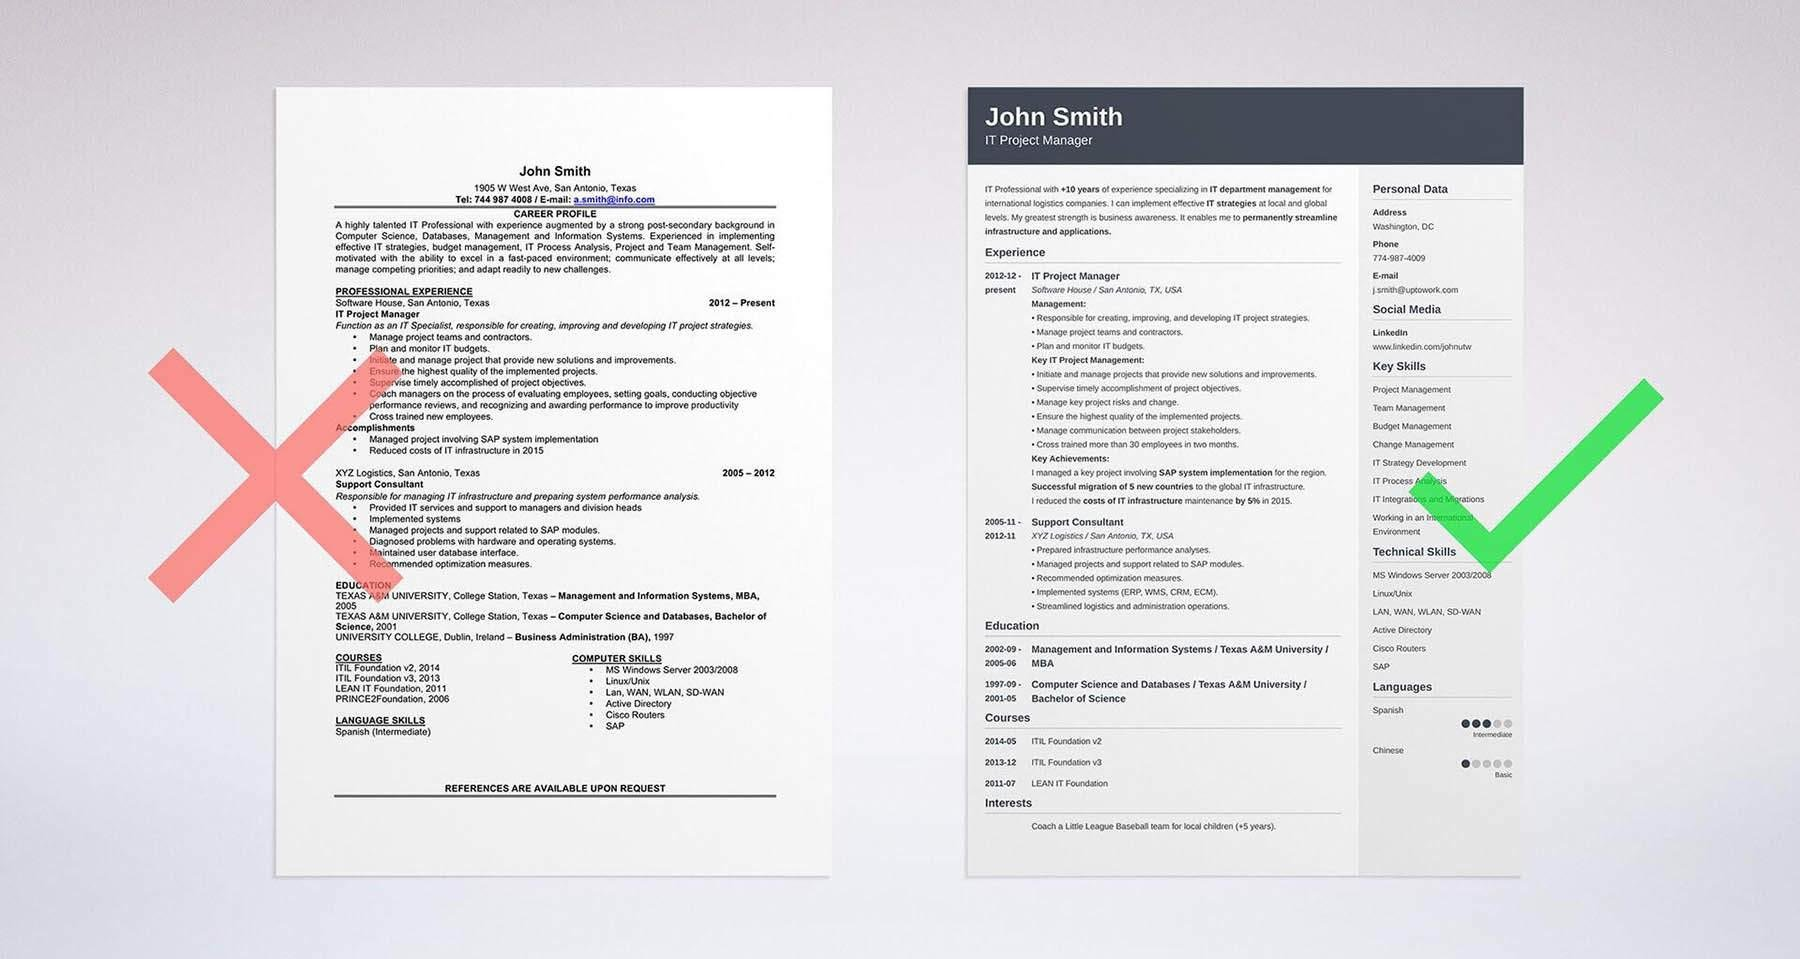 Merveilleux Highlight Your Resume Objective With Our Templates   Create Your Resume In  5 Minutes Here.